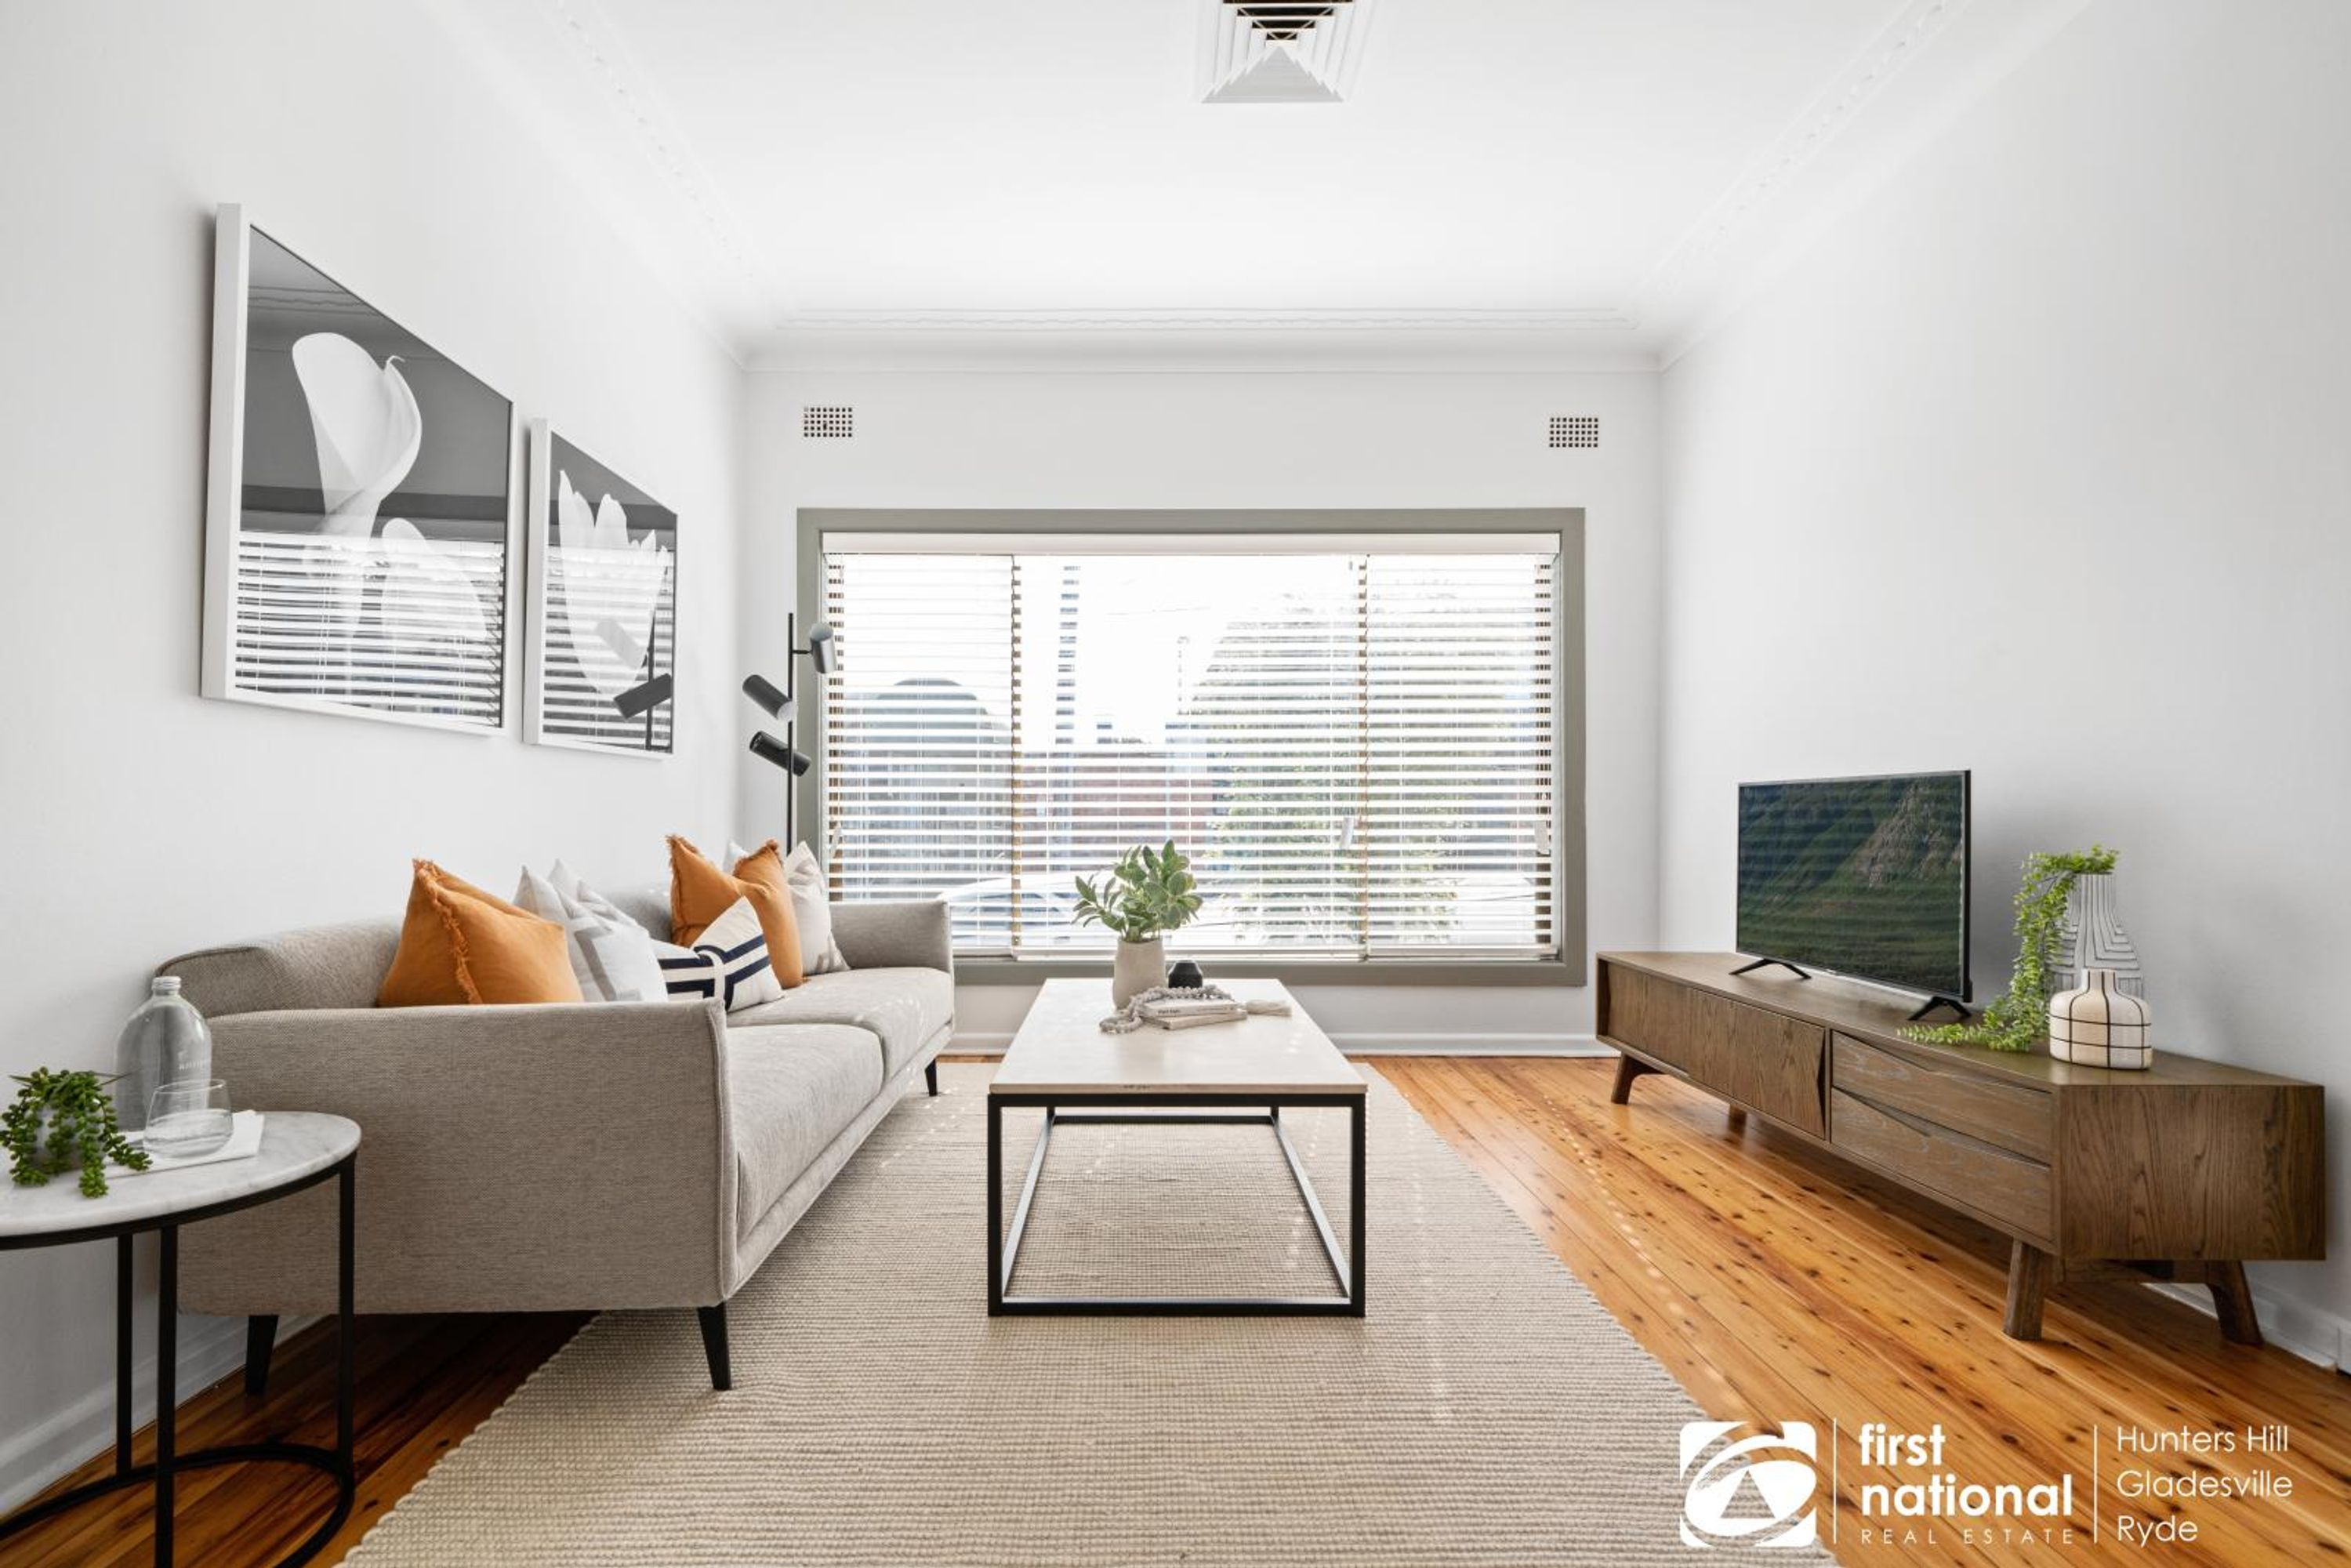 181 Ryde Road (entrance on Halcyon Street), Gladesville, NSW 2111